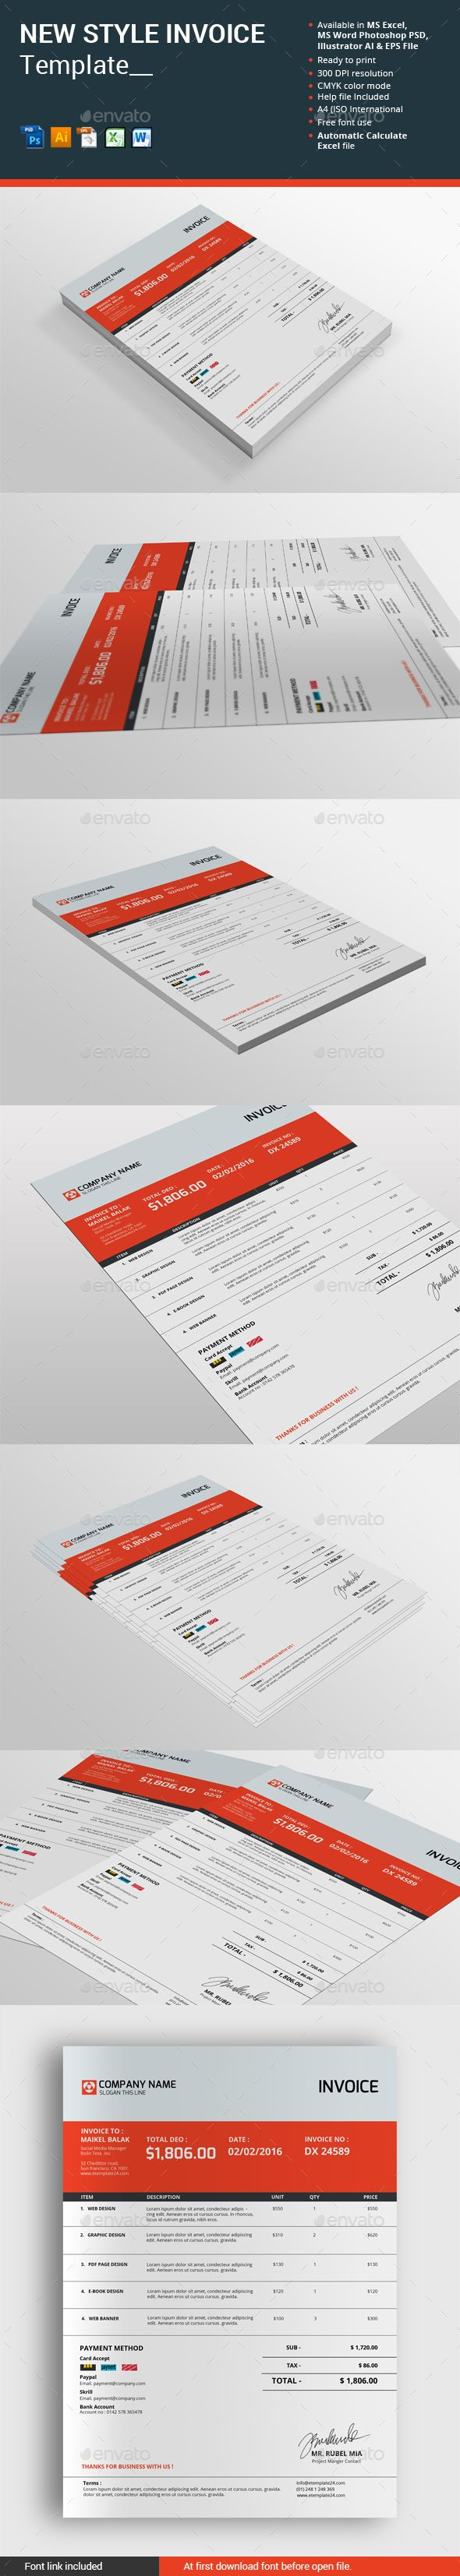 New Style Invoice Template. Download here: http://graphicriver.net/item/new-style-invoice-template/15784129?ref=ksioks